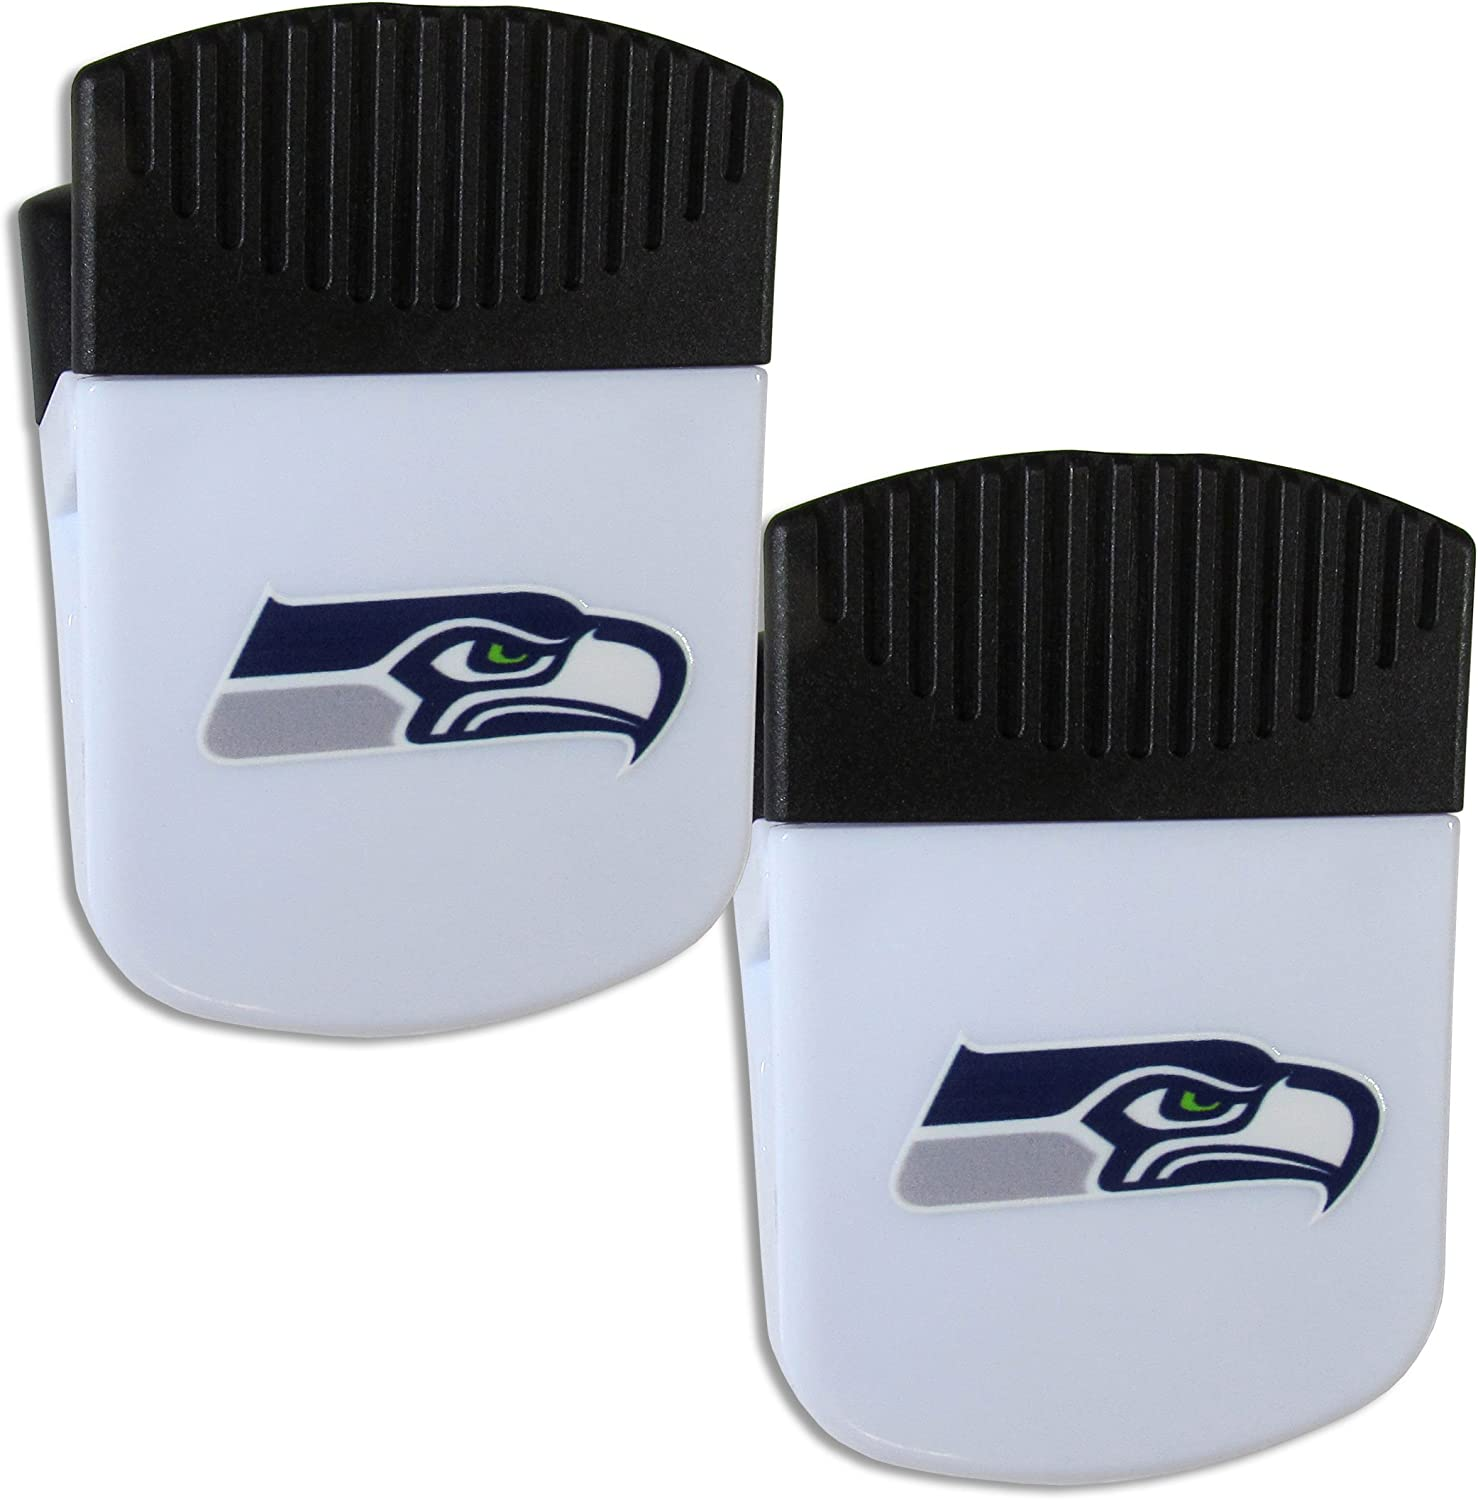 Siskiyou NFL Unisex Chip Clip Magnet with Bottle Opener